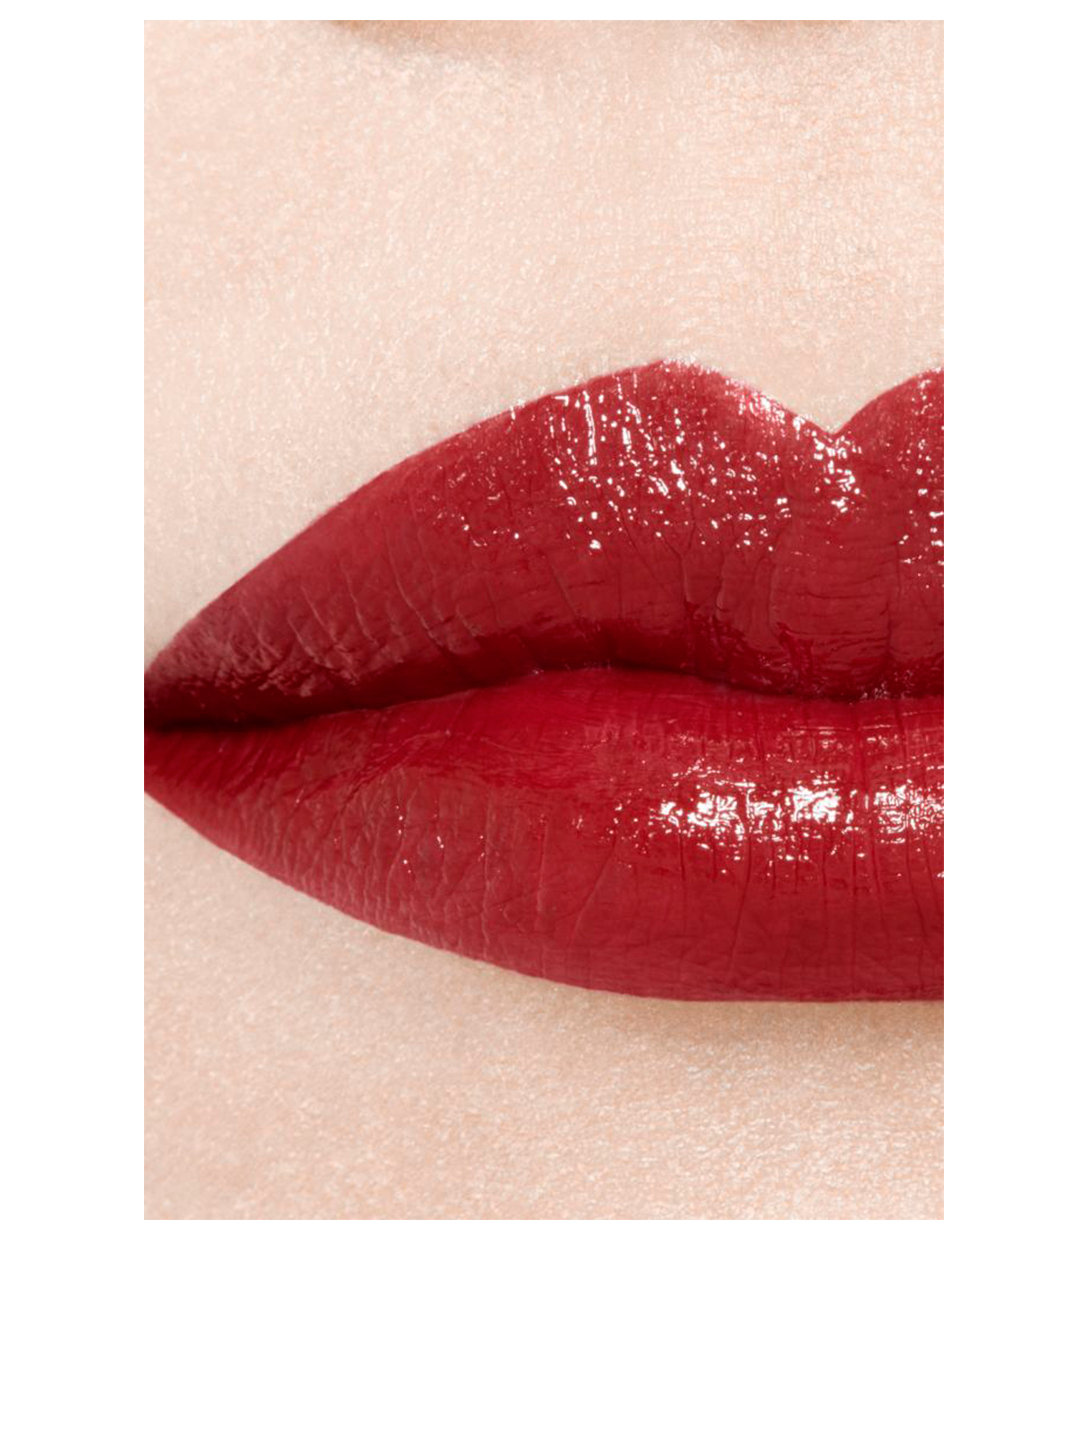 CHANEL Ultrawear Shine Liquid Lip Colour CHANEL Red